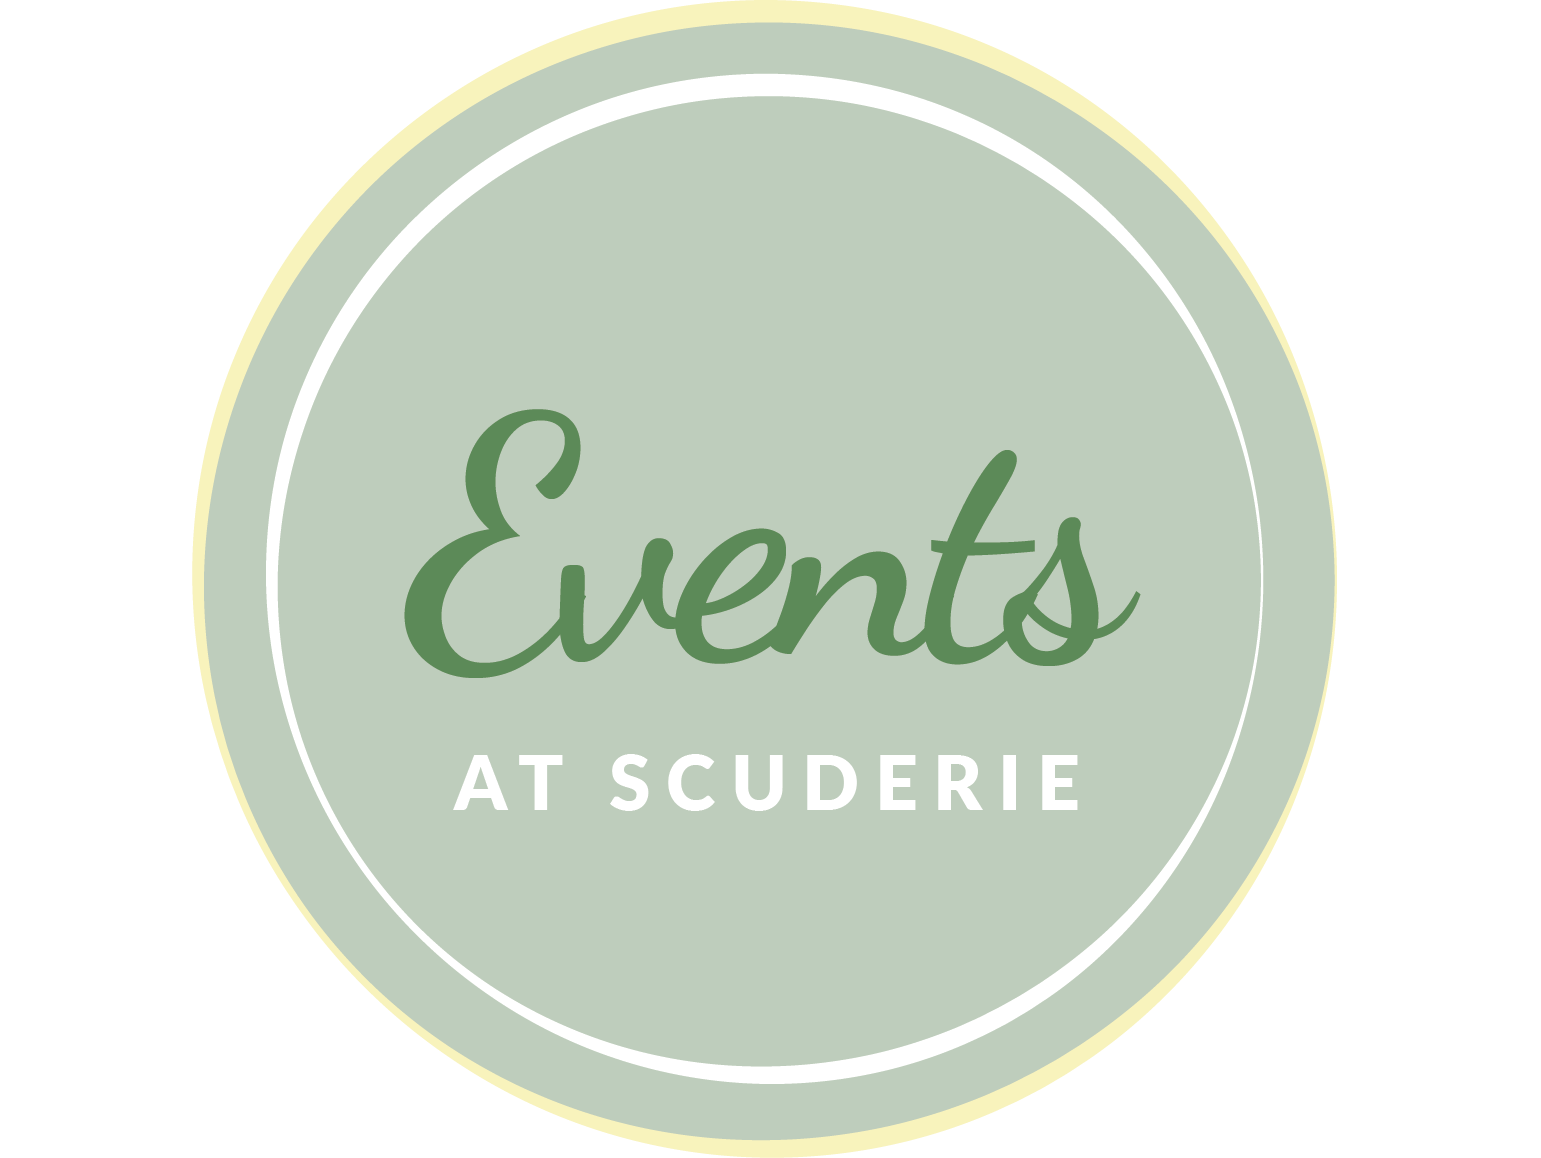 EVENTS AT SCUDERIE